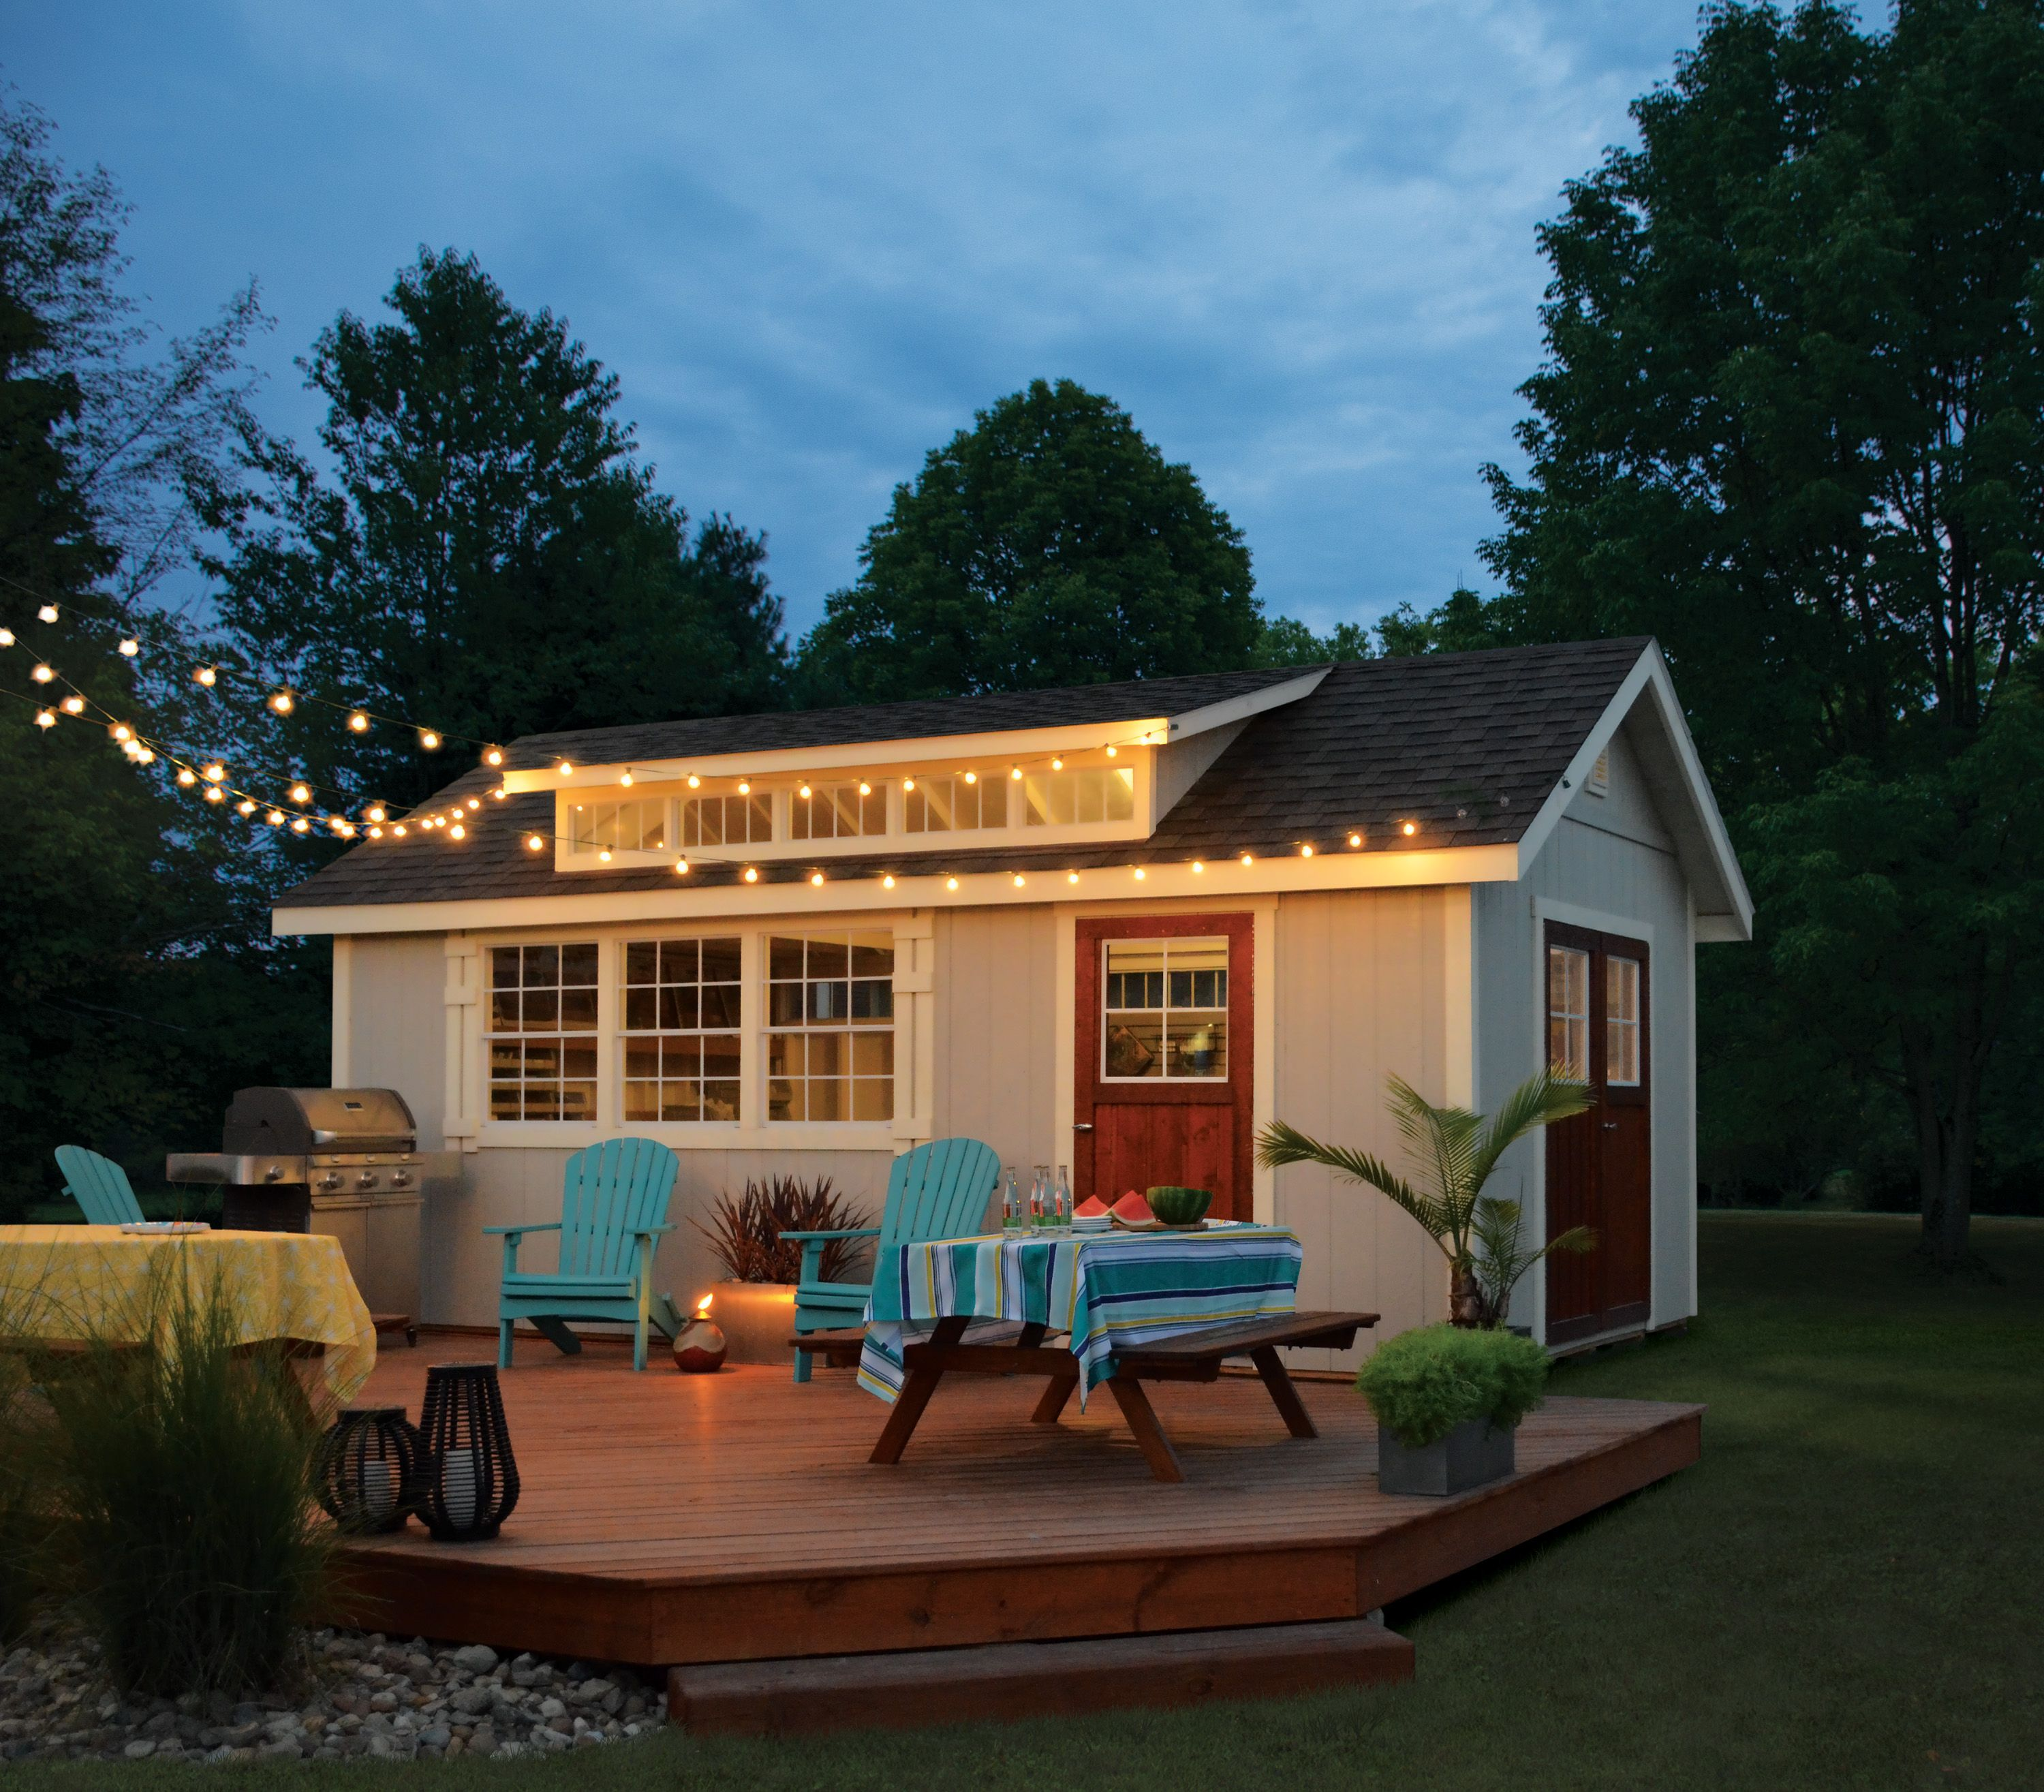 Design Ideas 8 Sheds You Ll Love Guest House Shed Backyard Sheds Outdoor Buildings Guest house in backyard ideas